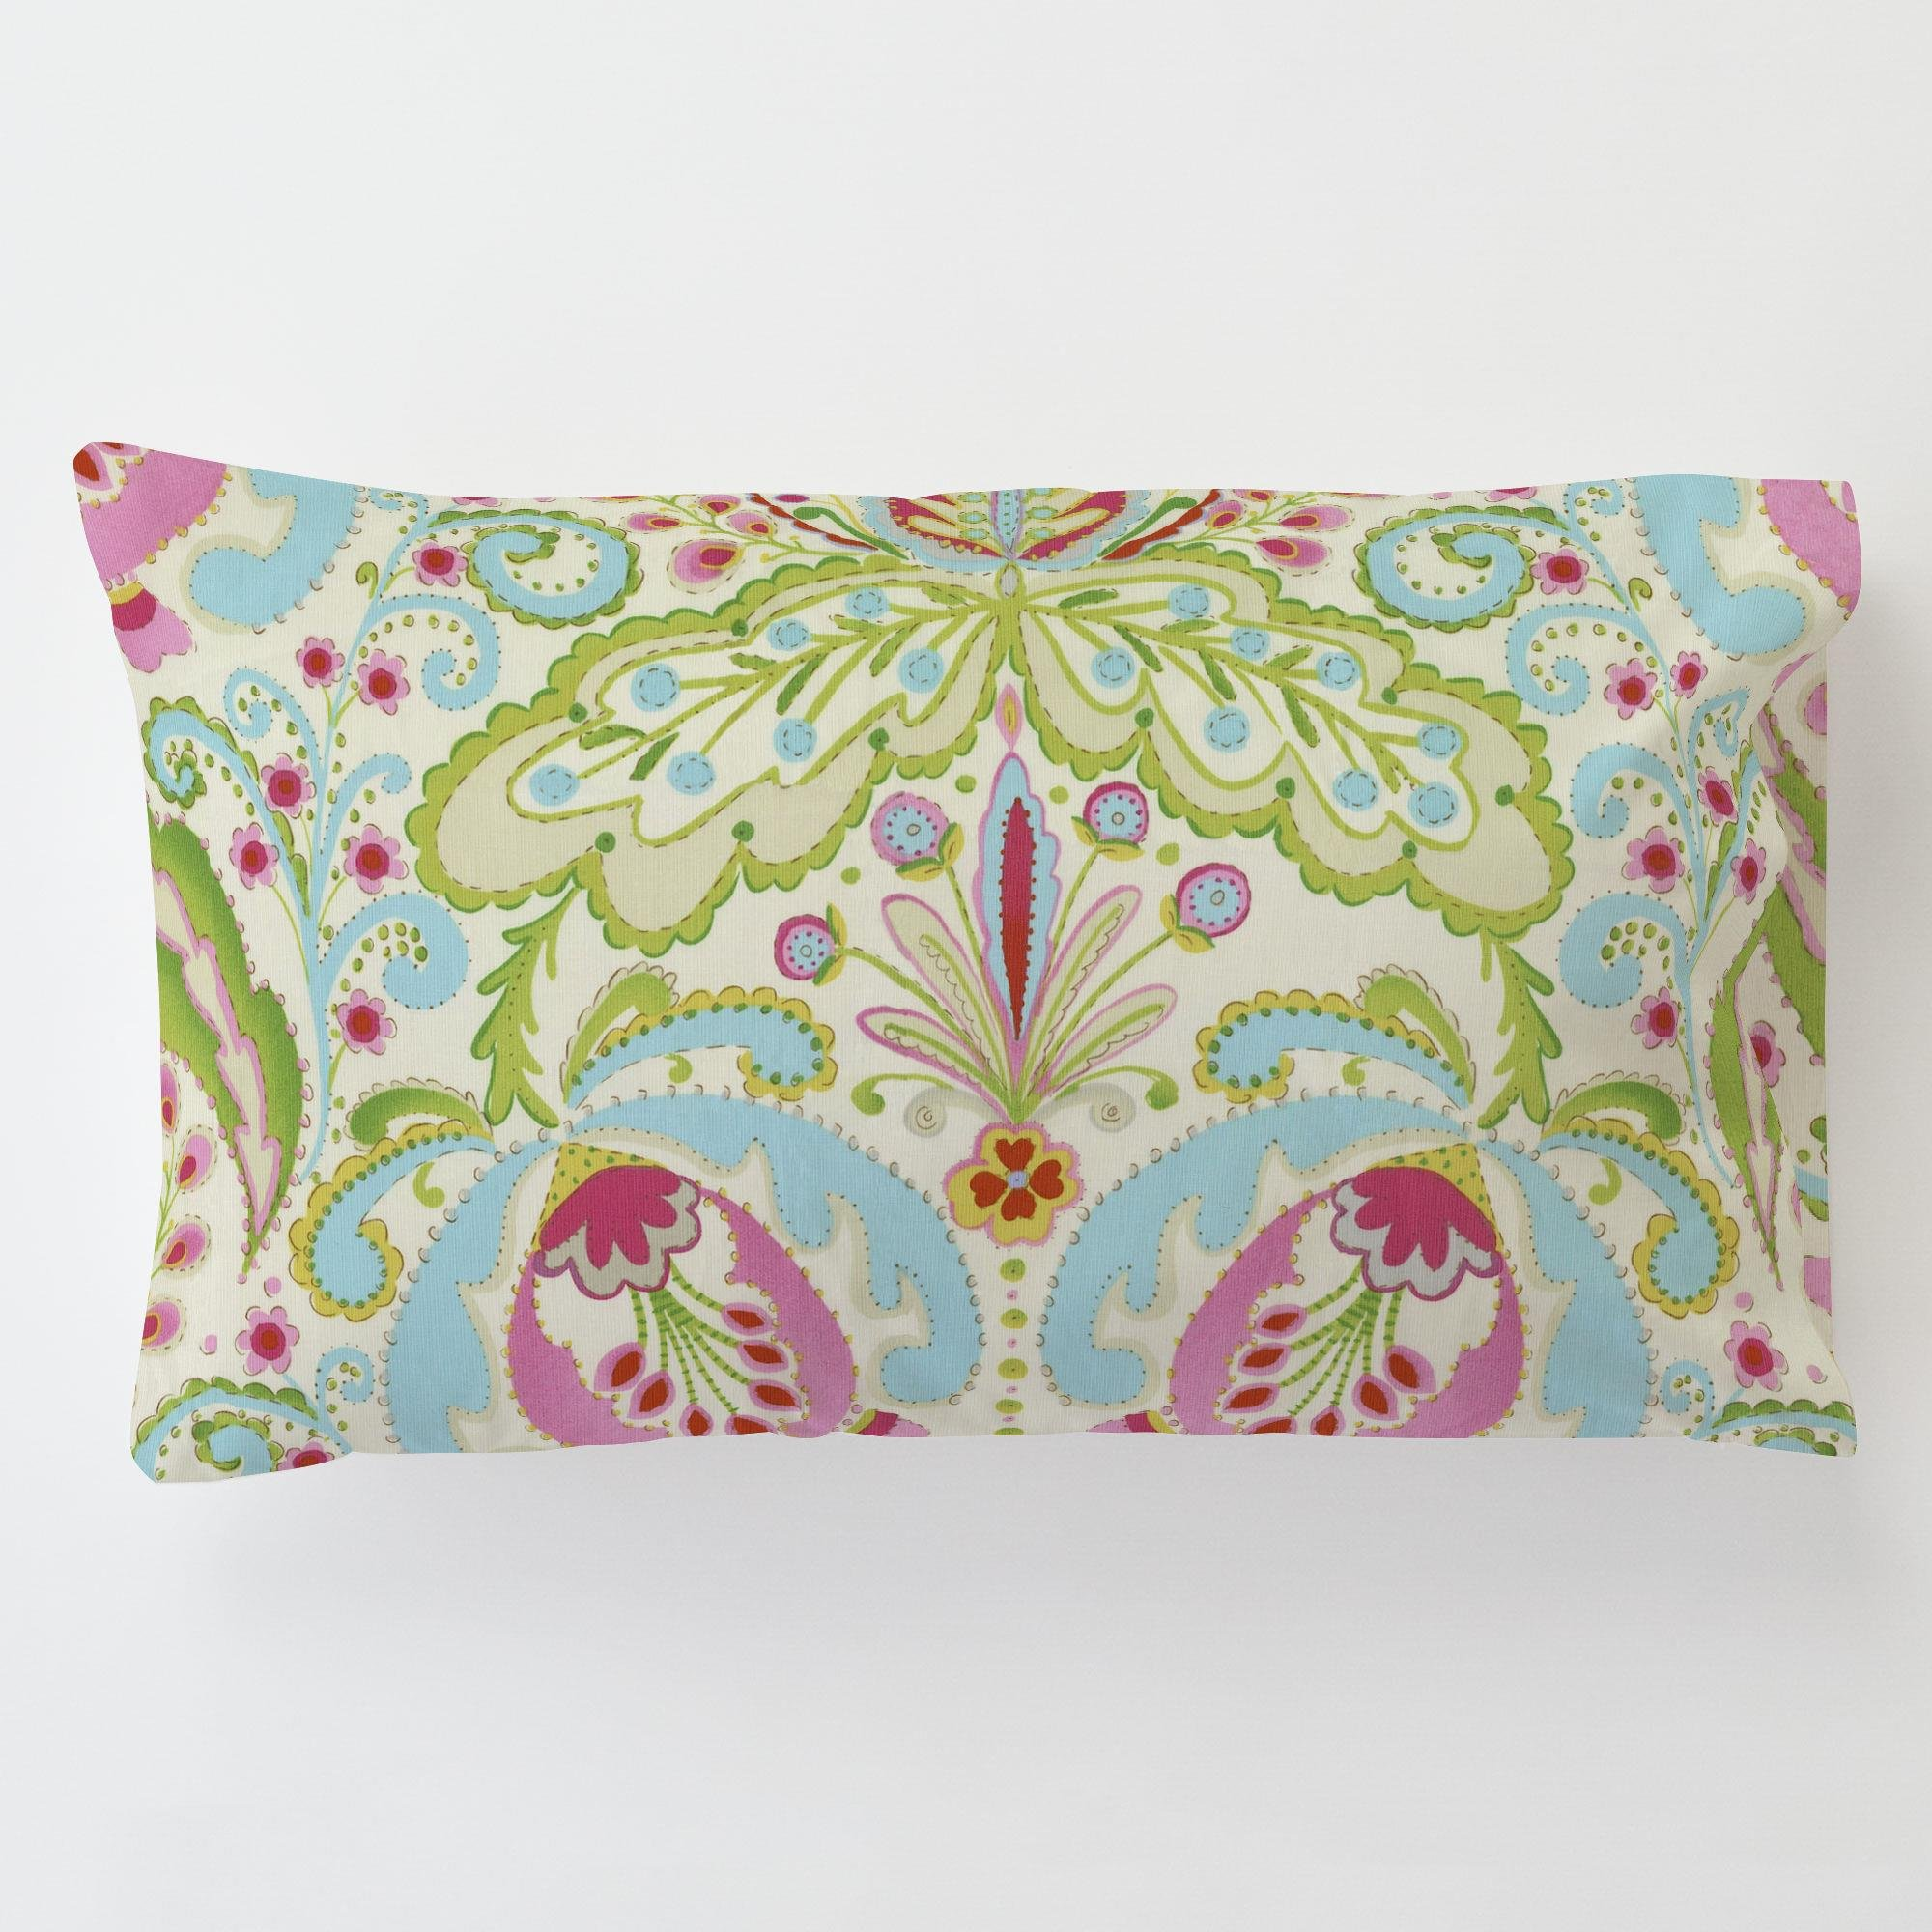 Carousel Designs Kumari Garden Teja Toddler Bed Pillow Case with Pillow by Carousel Designs